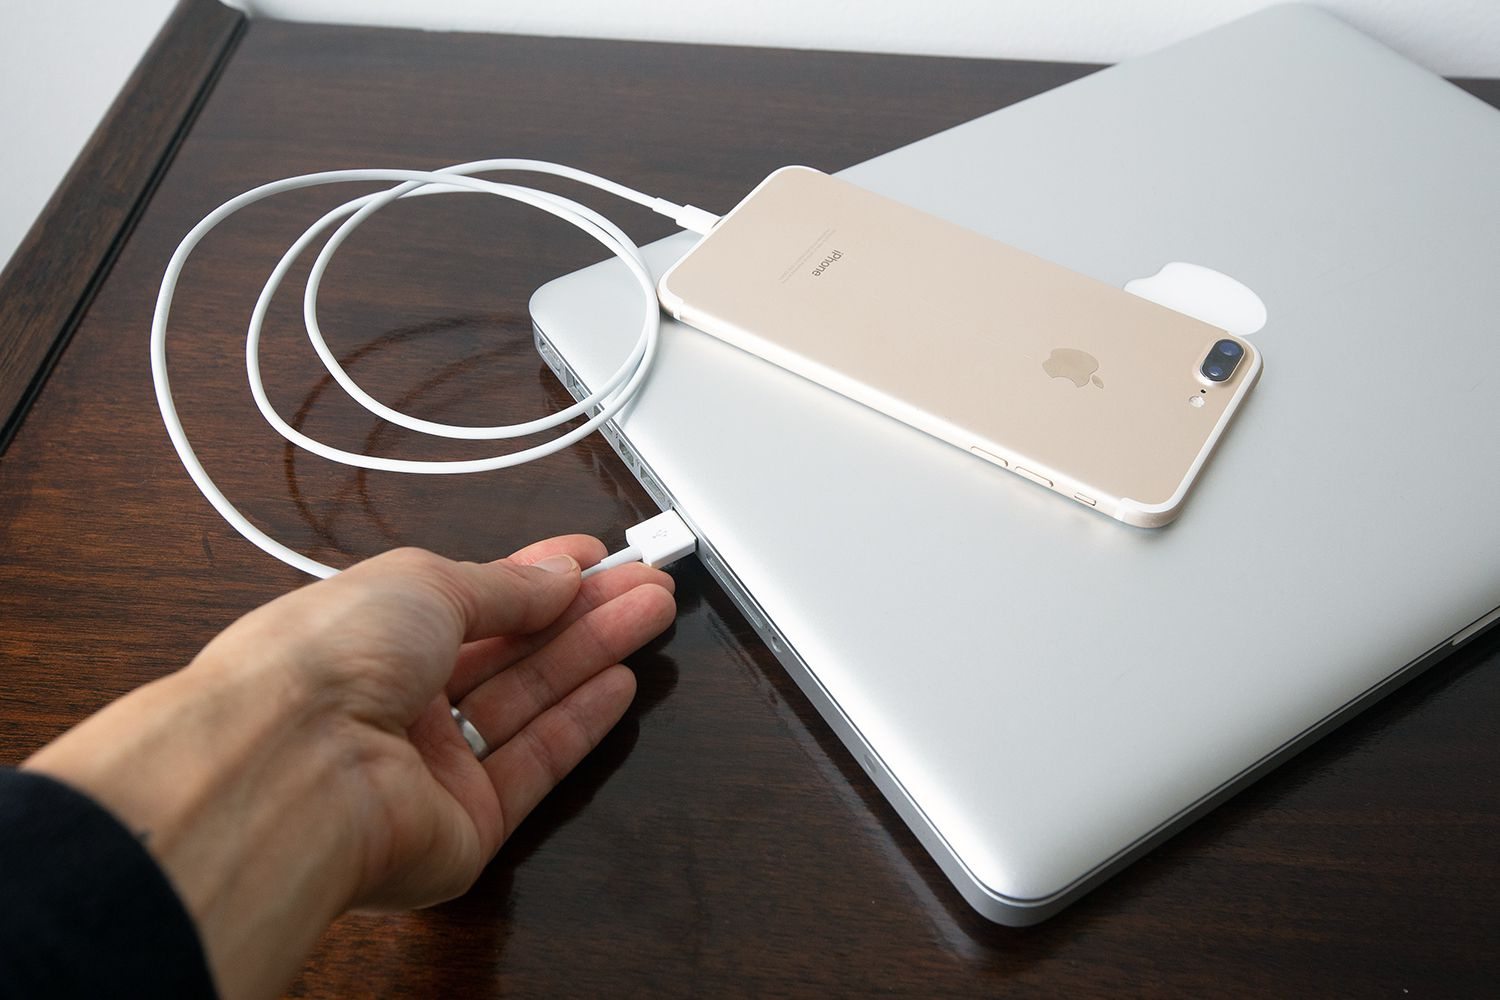 Apple Lightning to USB Cable (3-Foot)